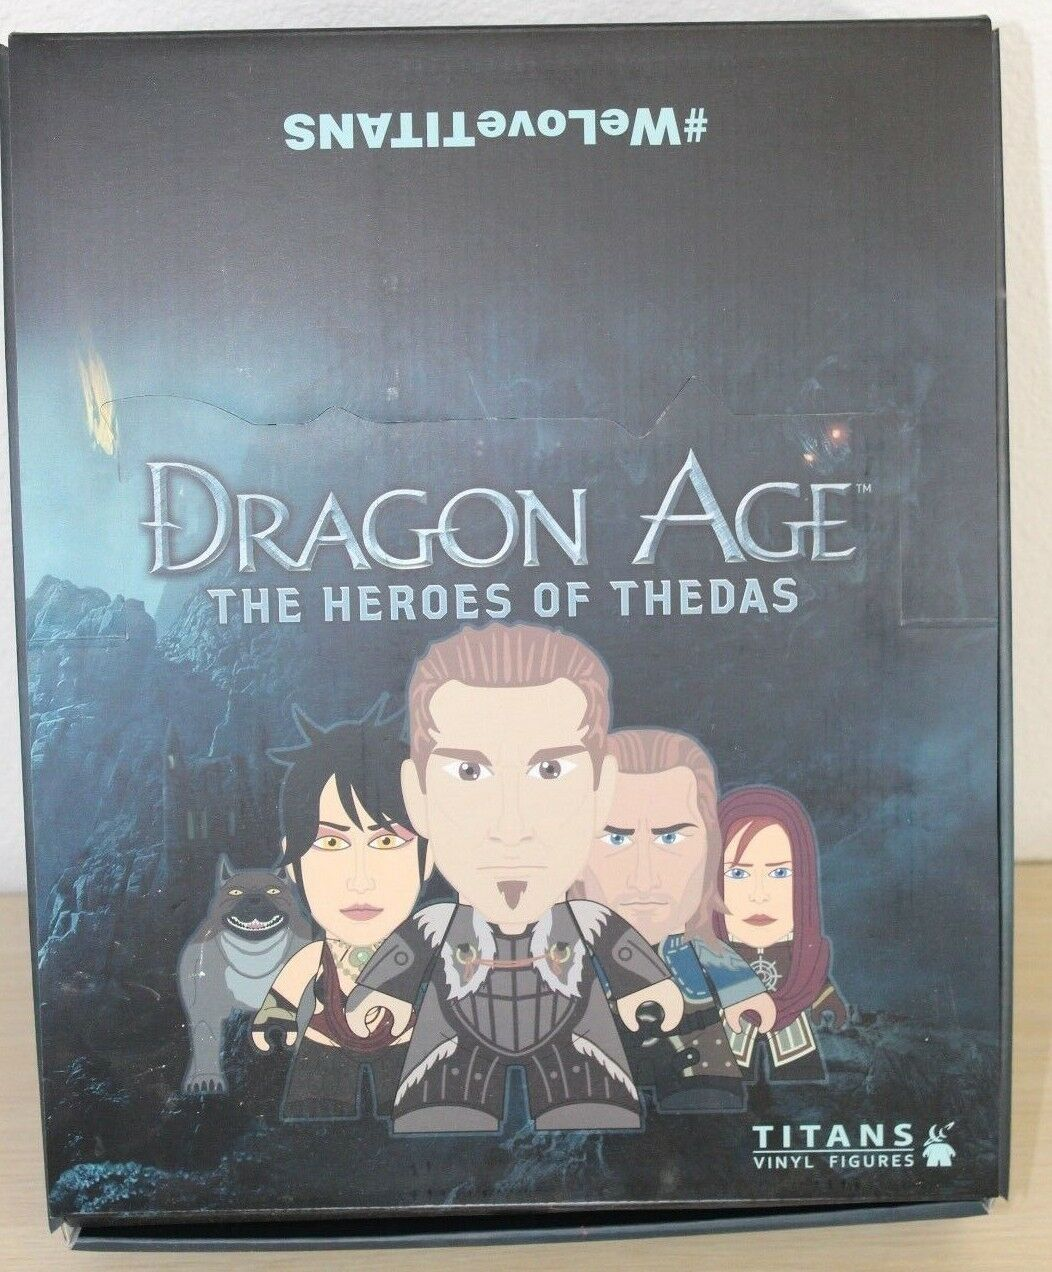 Dragon age helden thedas titanen titan - display blind box bei 20.